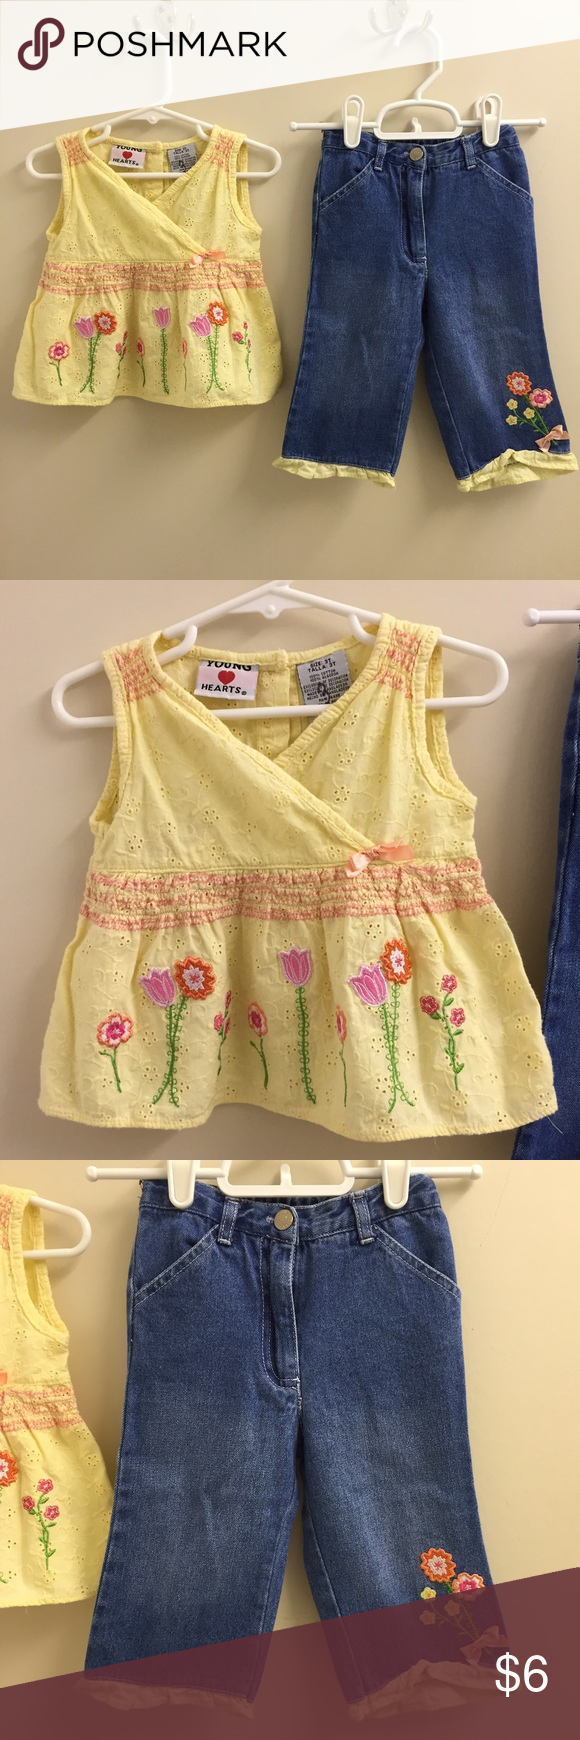 Young Hearts outfit Pretty yellow eyelet top and matching denim capri pants from Young Hearts.  In great condition! Matching Sets